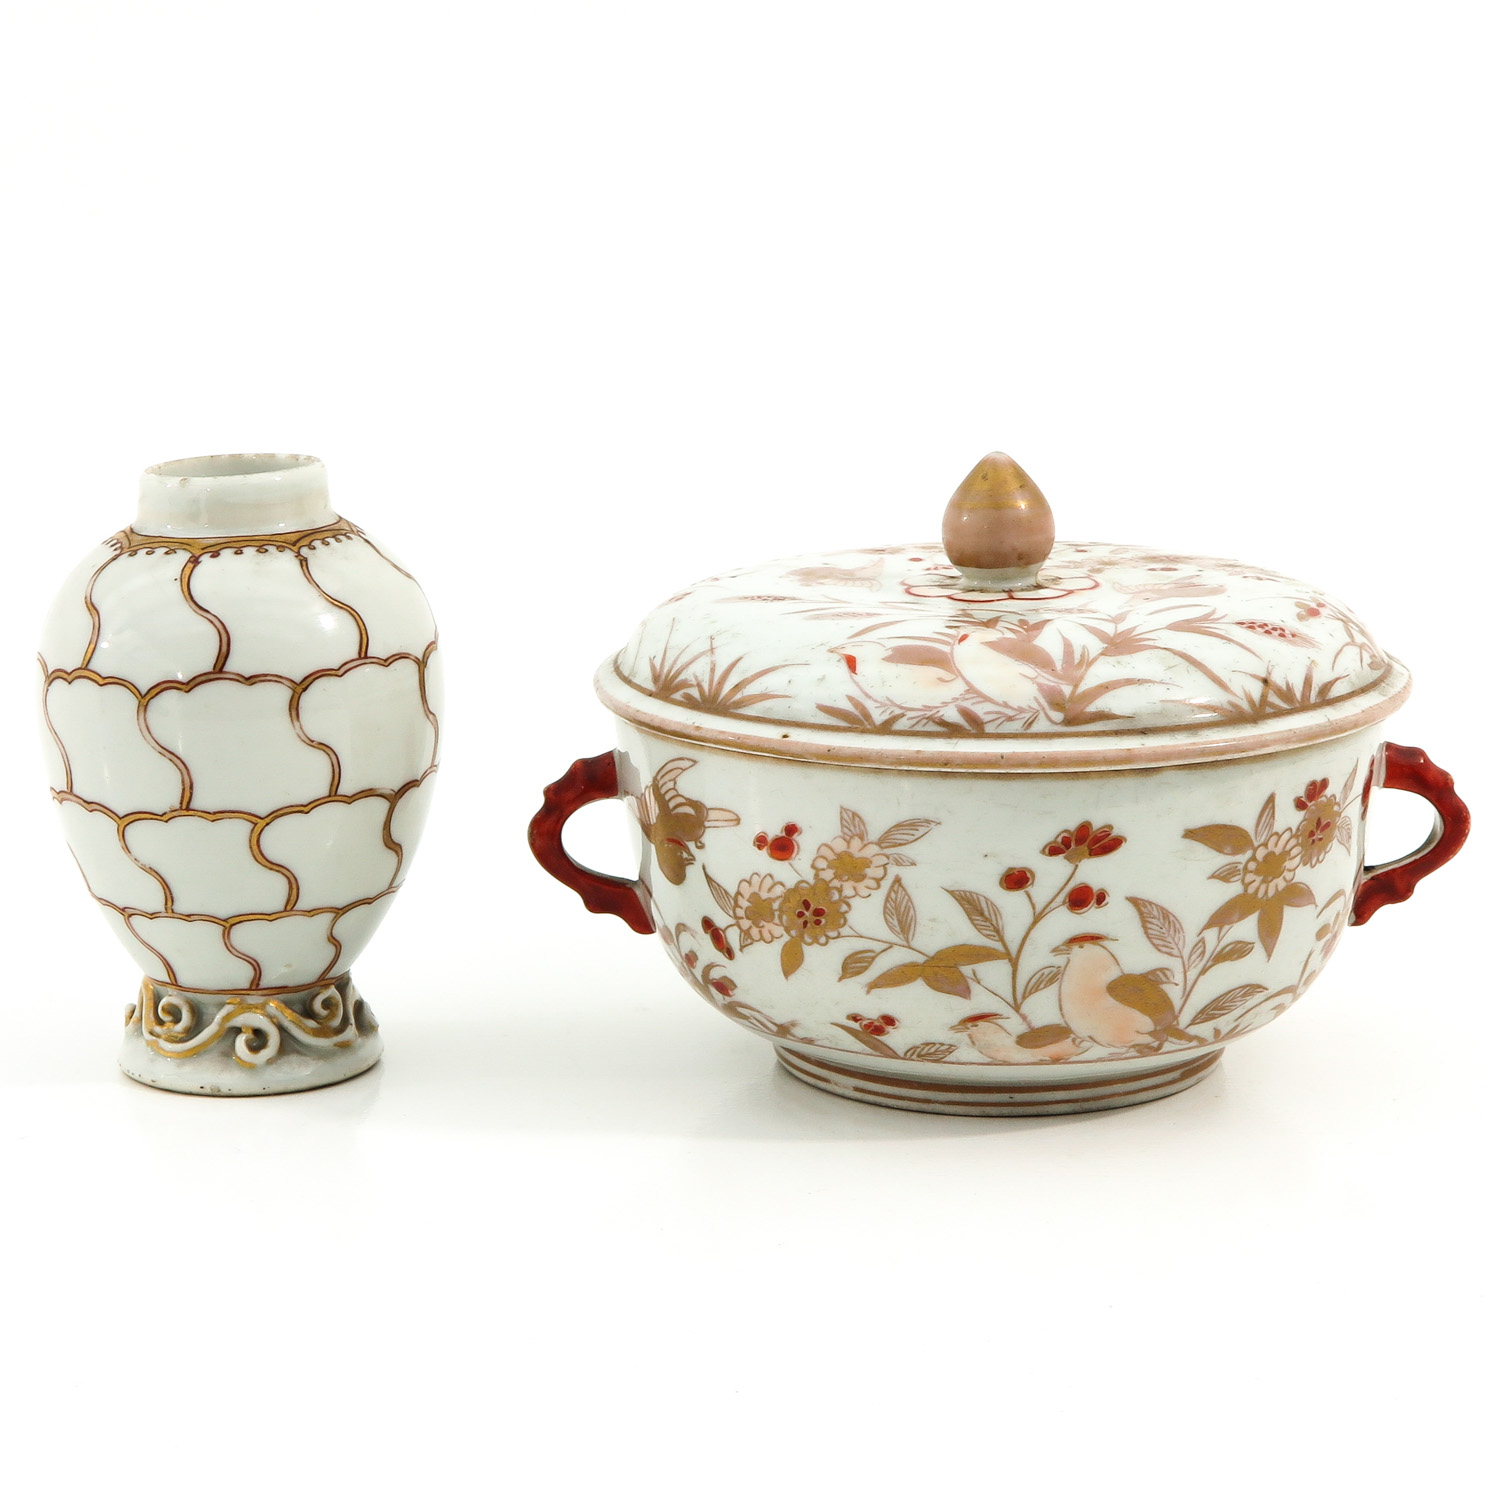 A Tea Box and Covered Dish